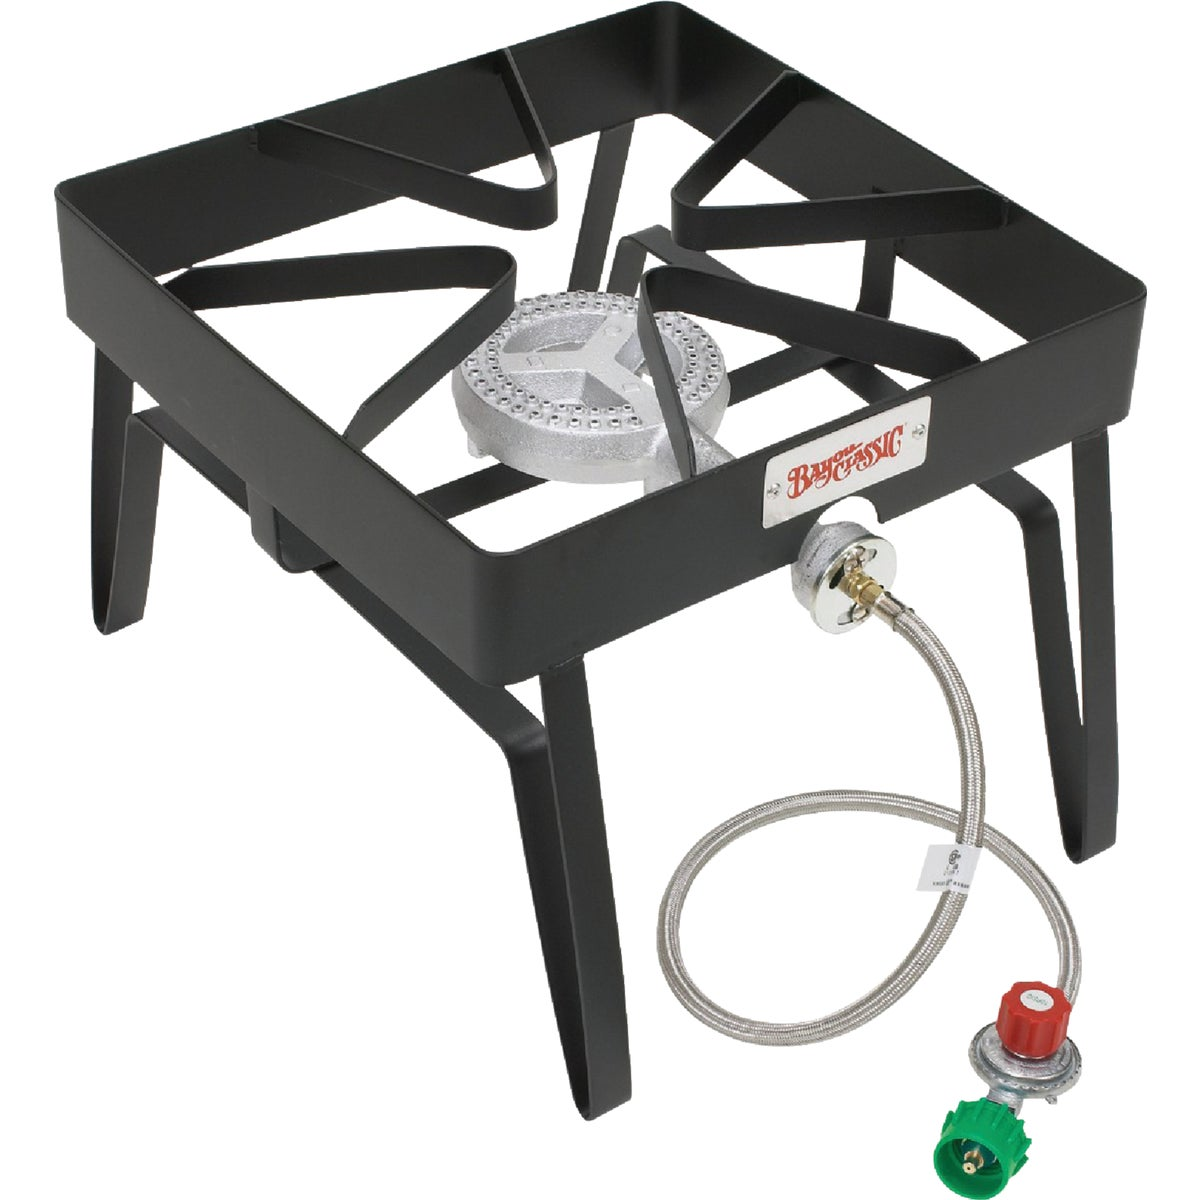 OUTDOOR PATIO STOVE